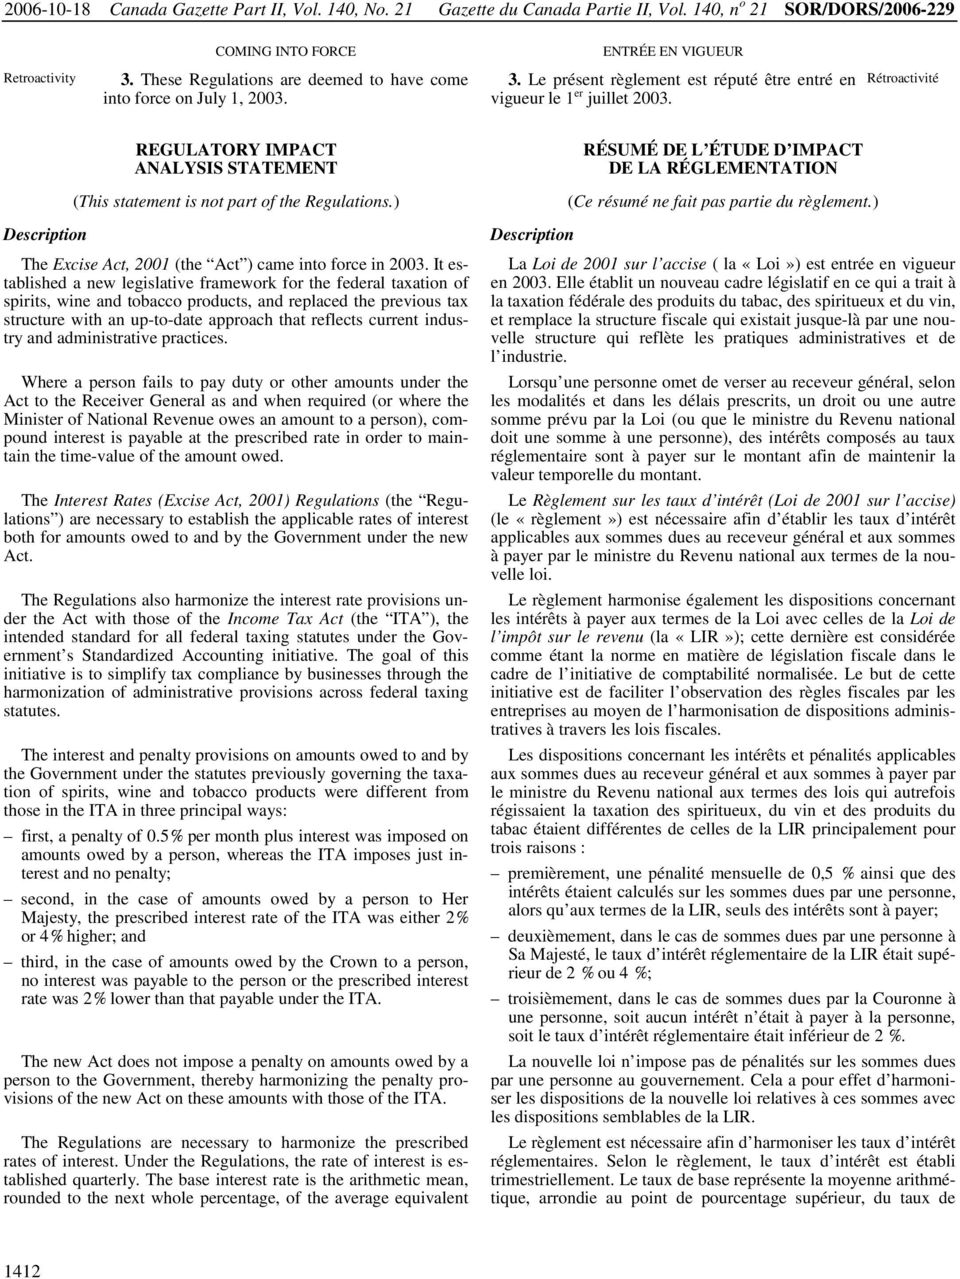 Rétroactivité REGULATORY IMPACT ANALYSIS STATEMENT RÉSUMÉ DE L ÉTUDE D IMPACT DE LA RÉGLEMENTATION (This statement is not part of the Regulations.